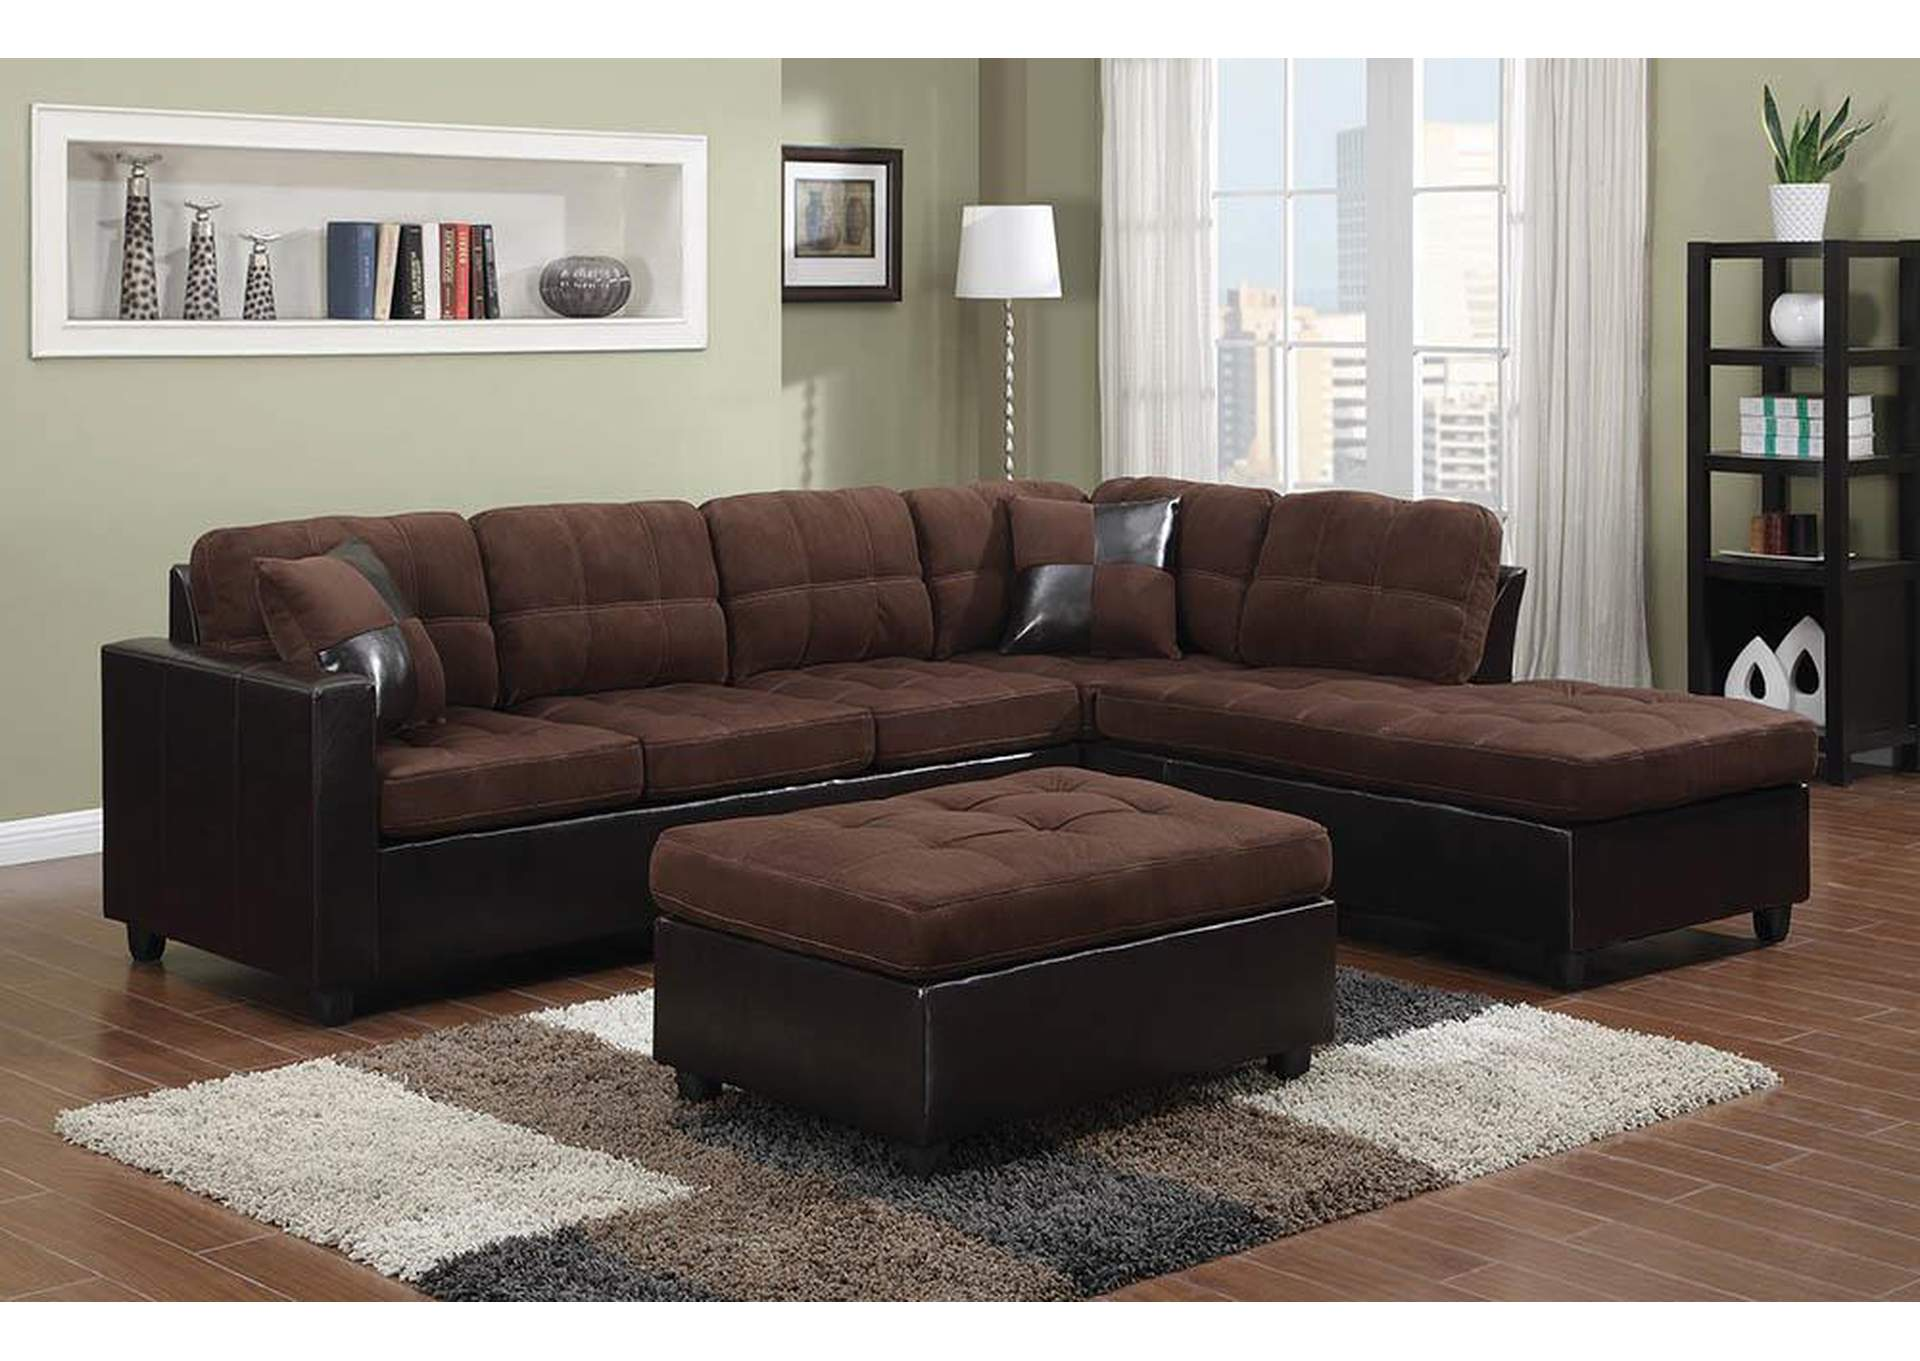 Mallory Chocolate Sectional,Coaster Furniture